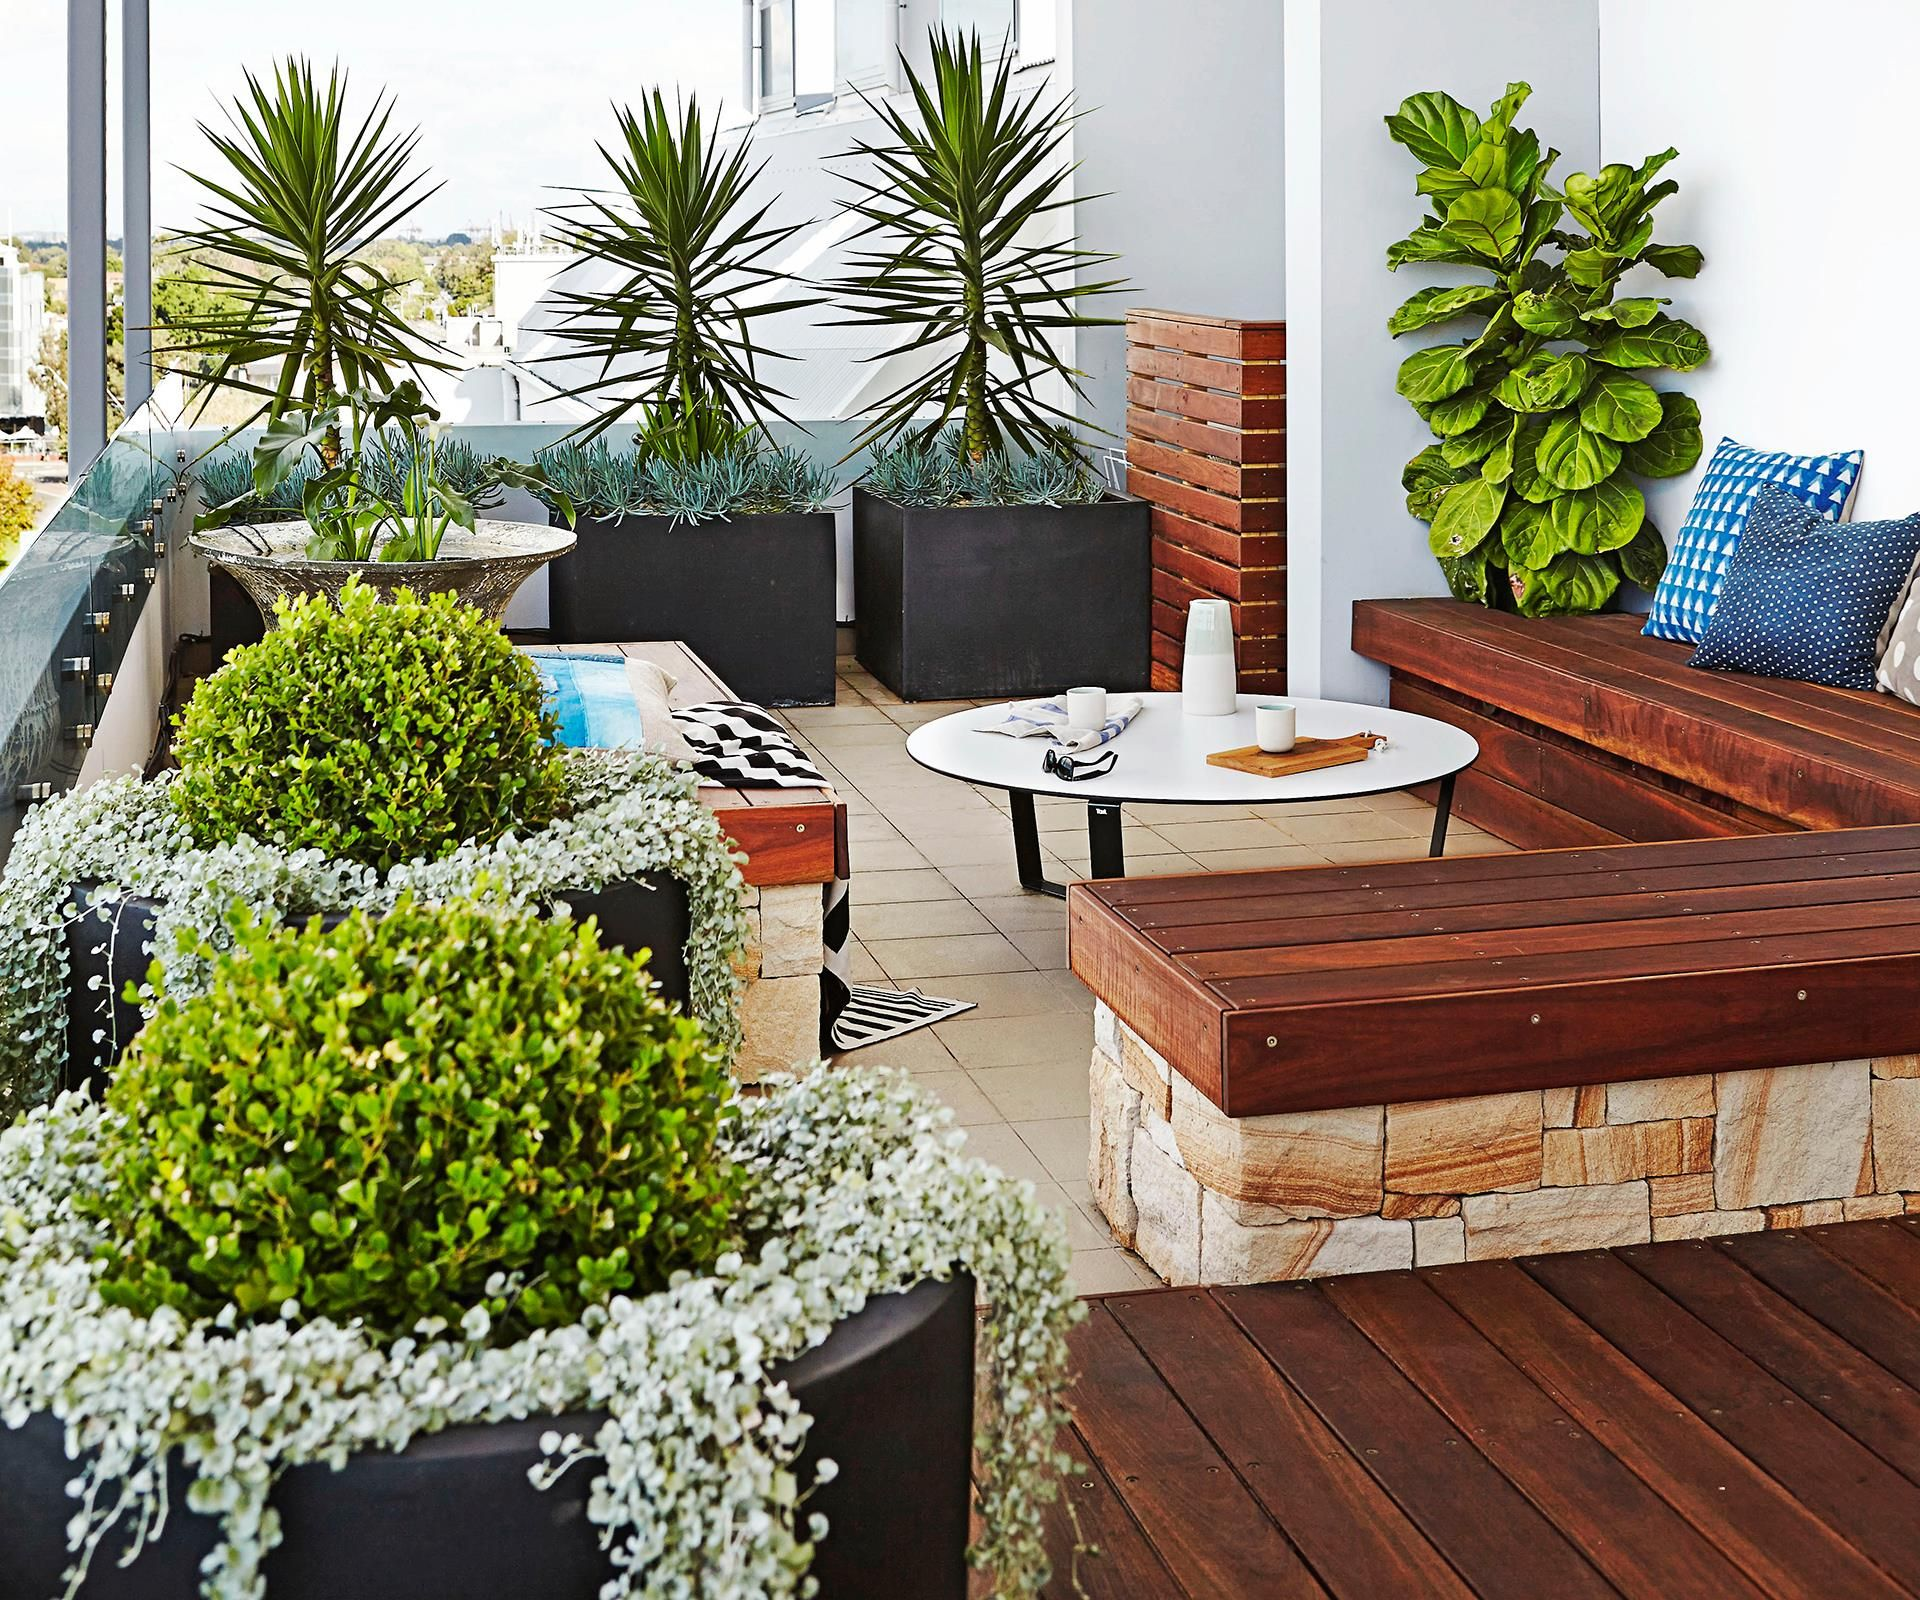 Gallery - The Ultimate Garden Balcony | Garden design ...